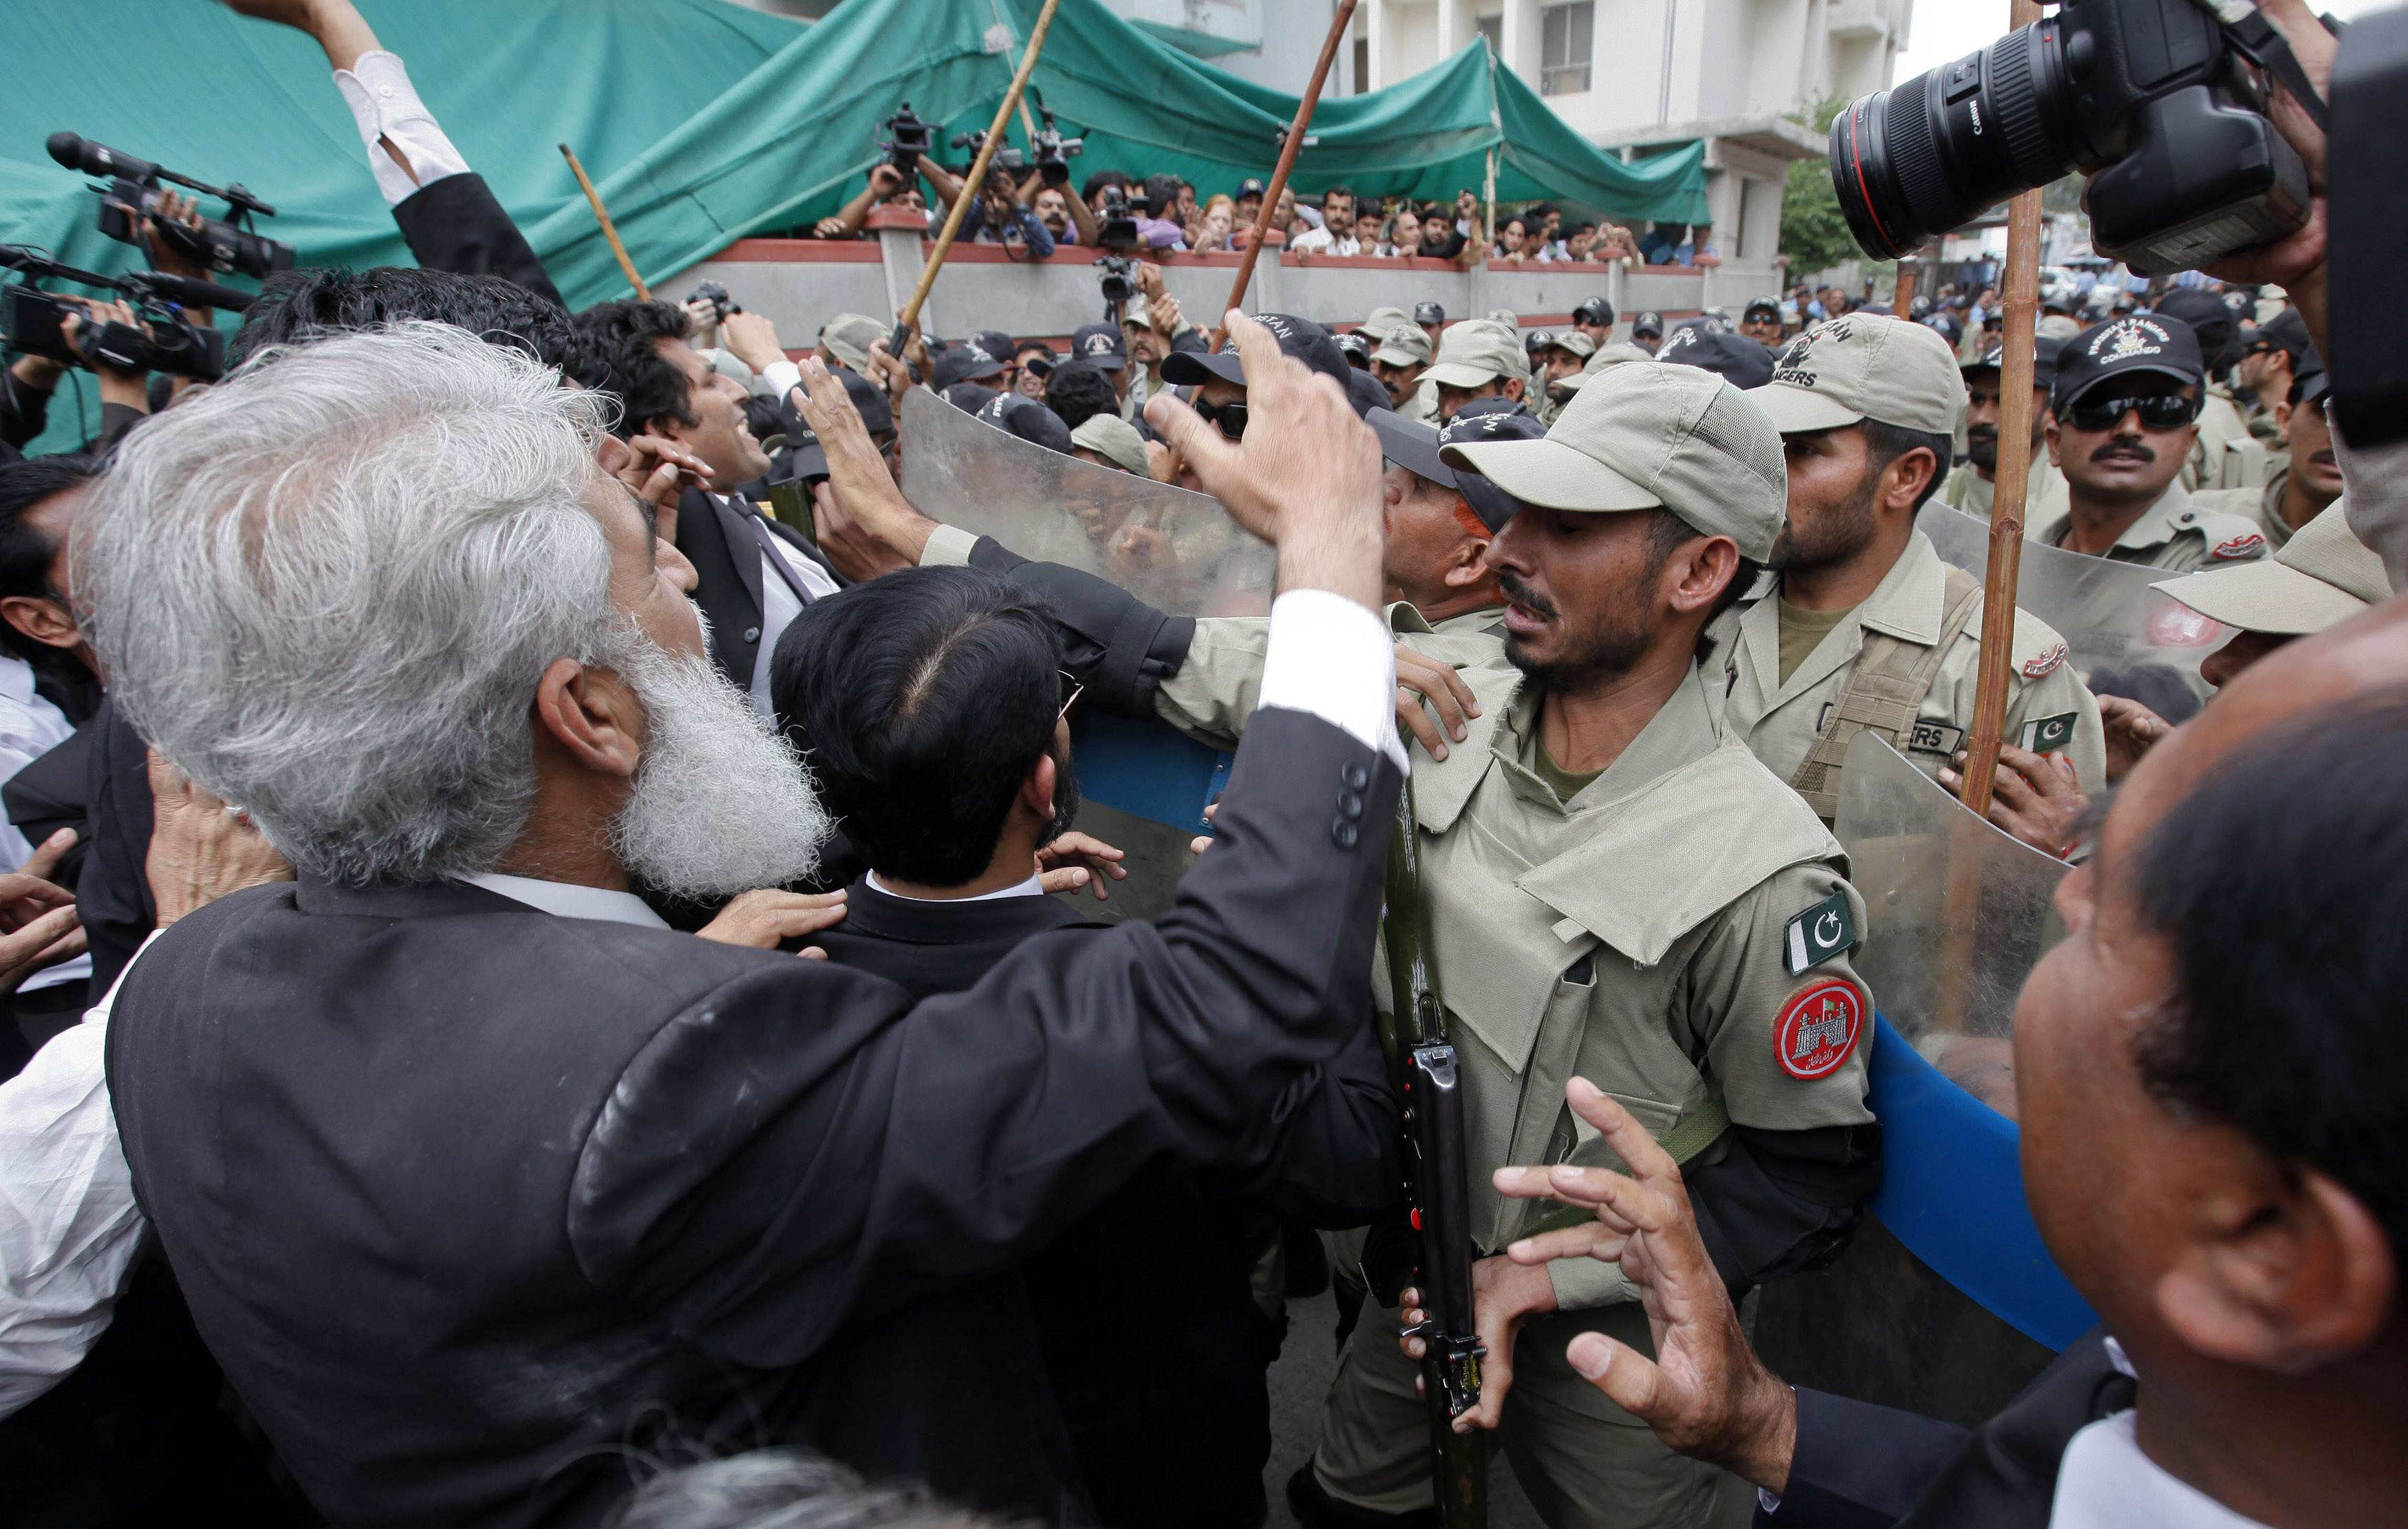 Lawyers shouting anti-Musharraf slogans scuffle with paramilitary soldiers outside the anti-terrorism court where former Pakistani president and head of the All Pakistan Muslim League (APML) political party Pervez Musharraf is attending a hearing, in Islamabad April 20, 2013. — AFP Photo